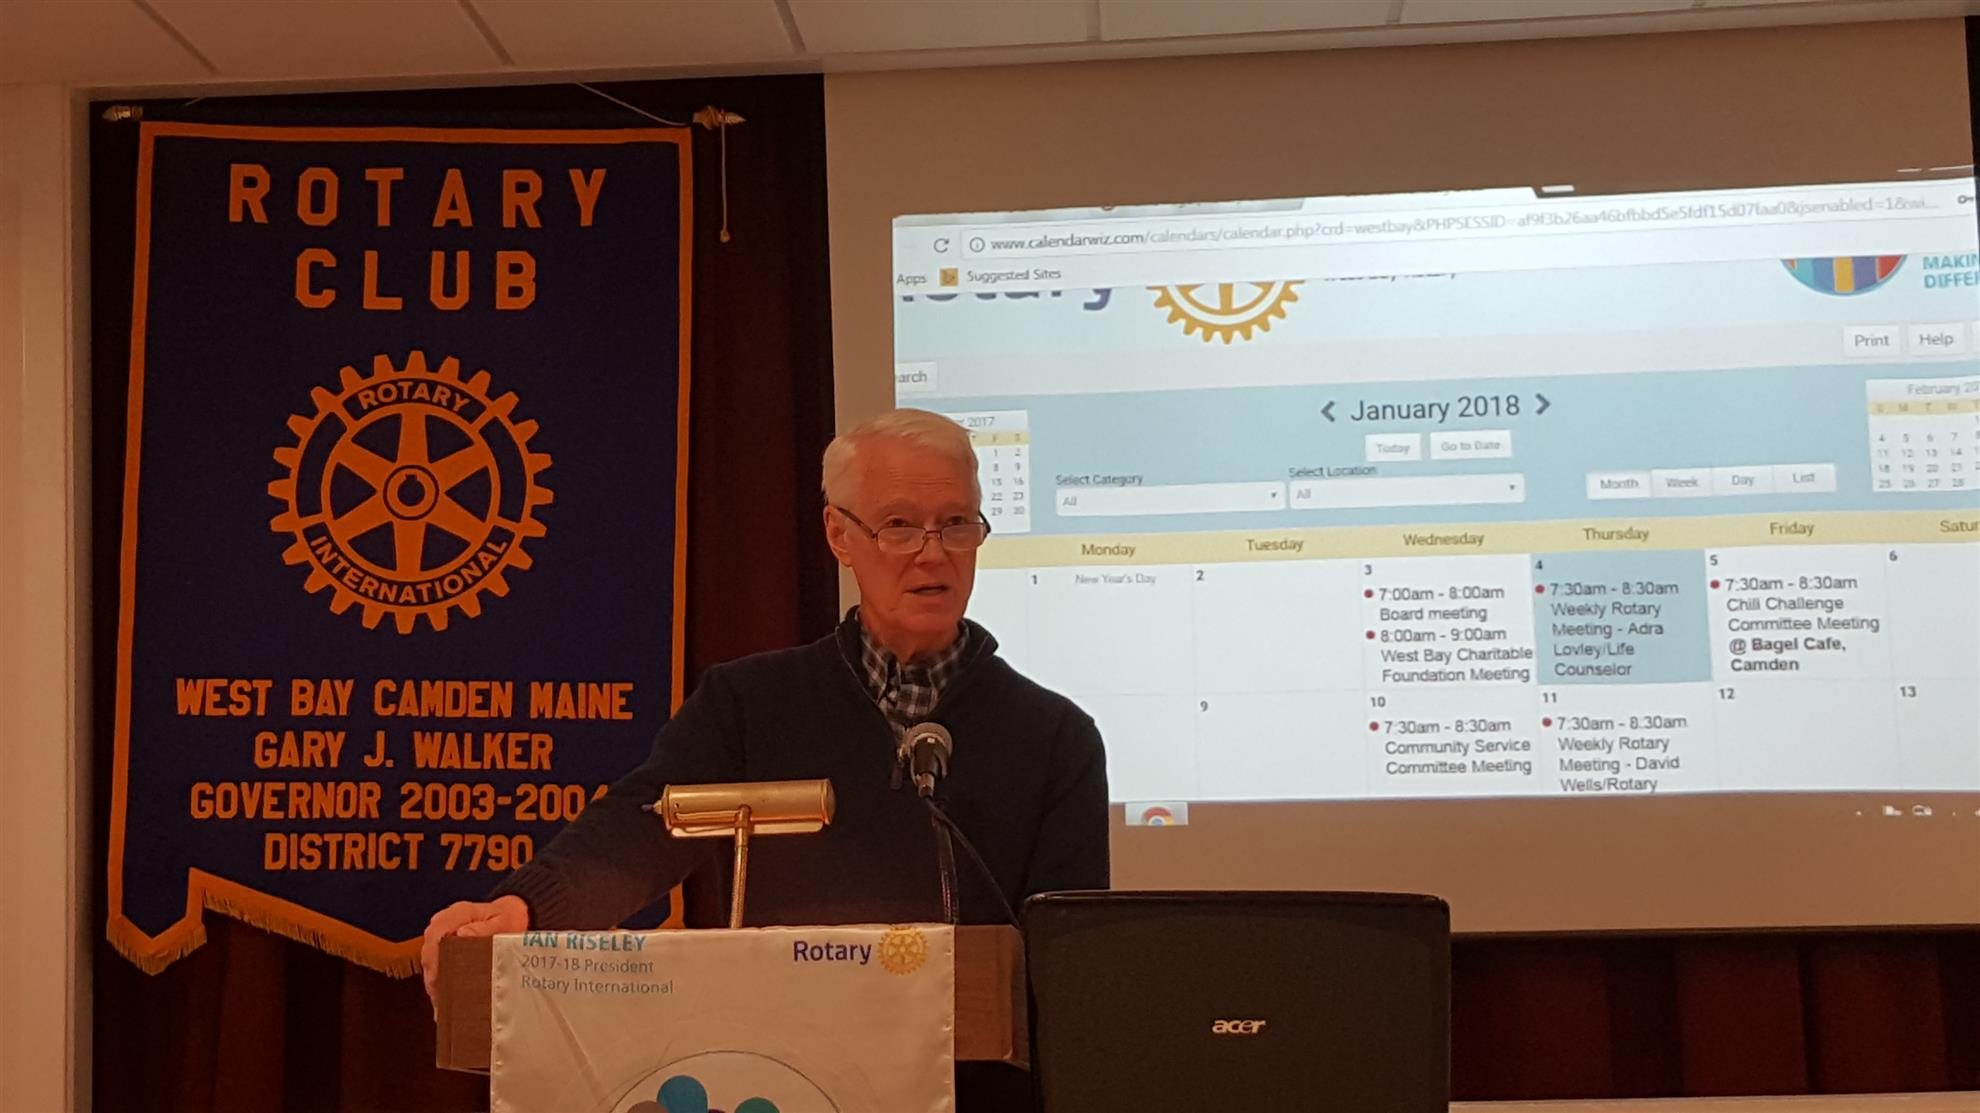 Stories | Rotary Club of West Bay